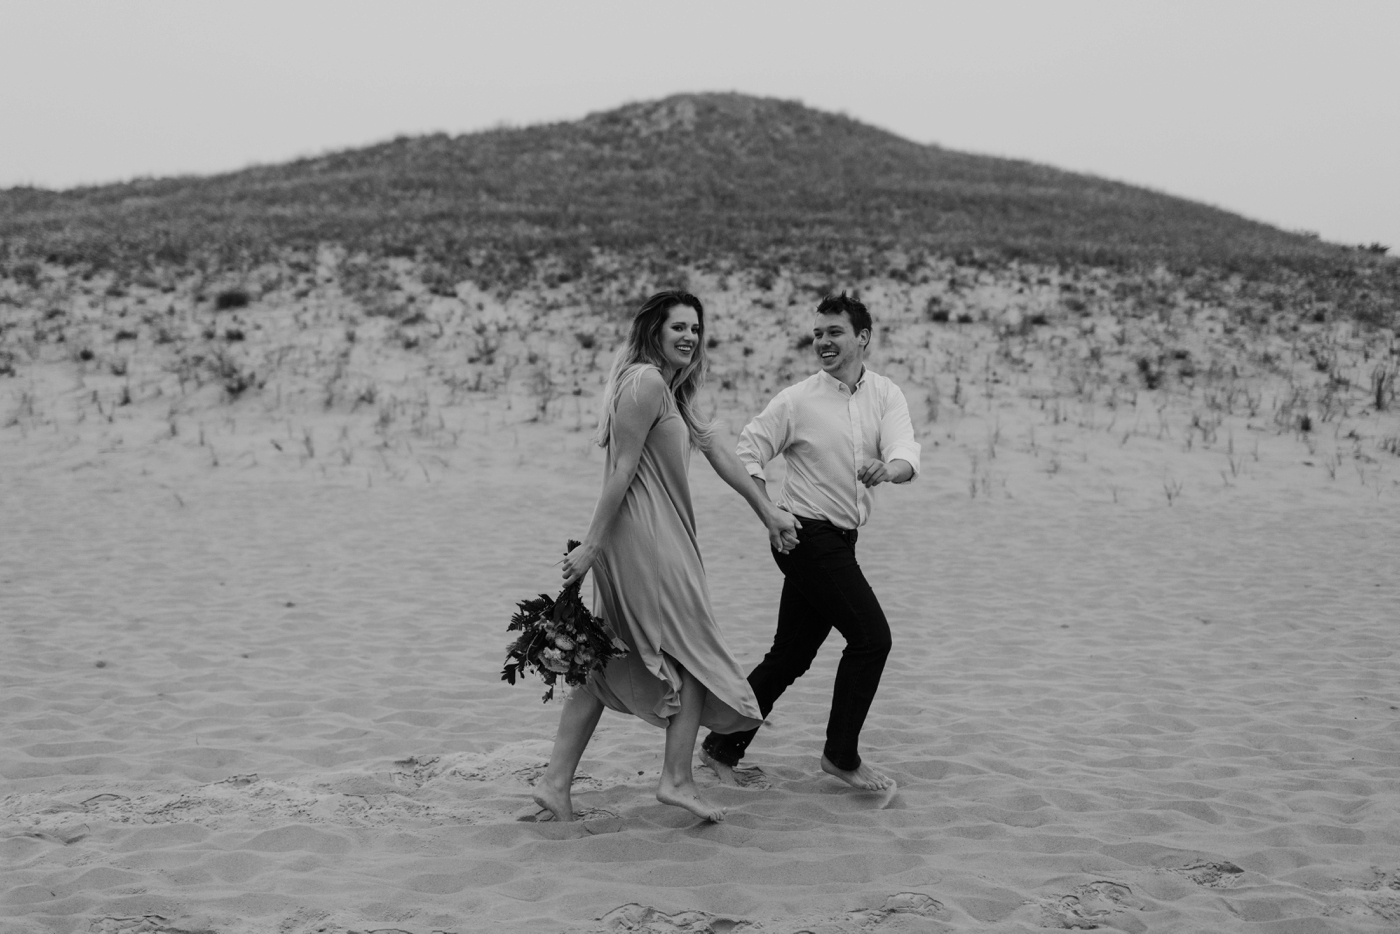 Sleeping_Bear_Dunes_Couples_Adventure_Session_Adventure_Wedding_Photographer_Hiking_with_Heels_Brett+Emily-16.jpg